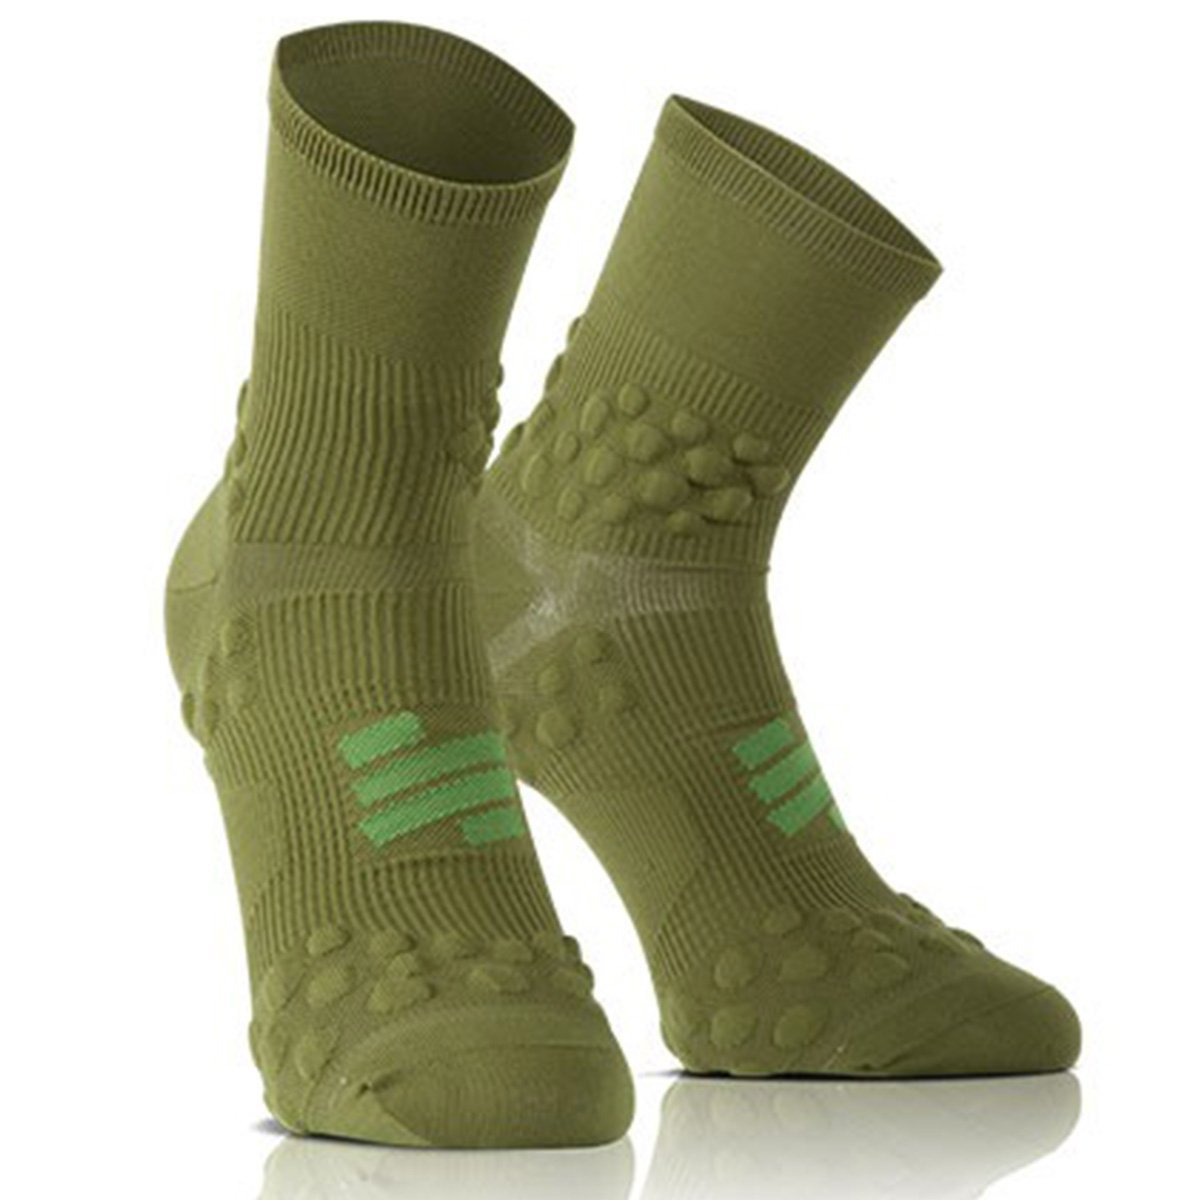 Compressport Tactical Under Control Pro High Socks